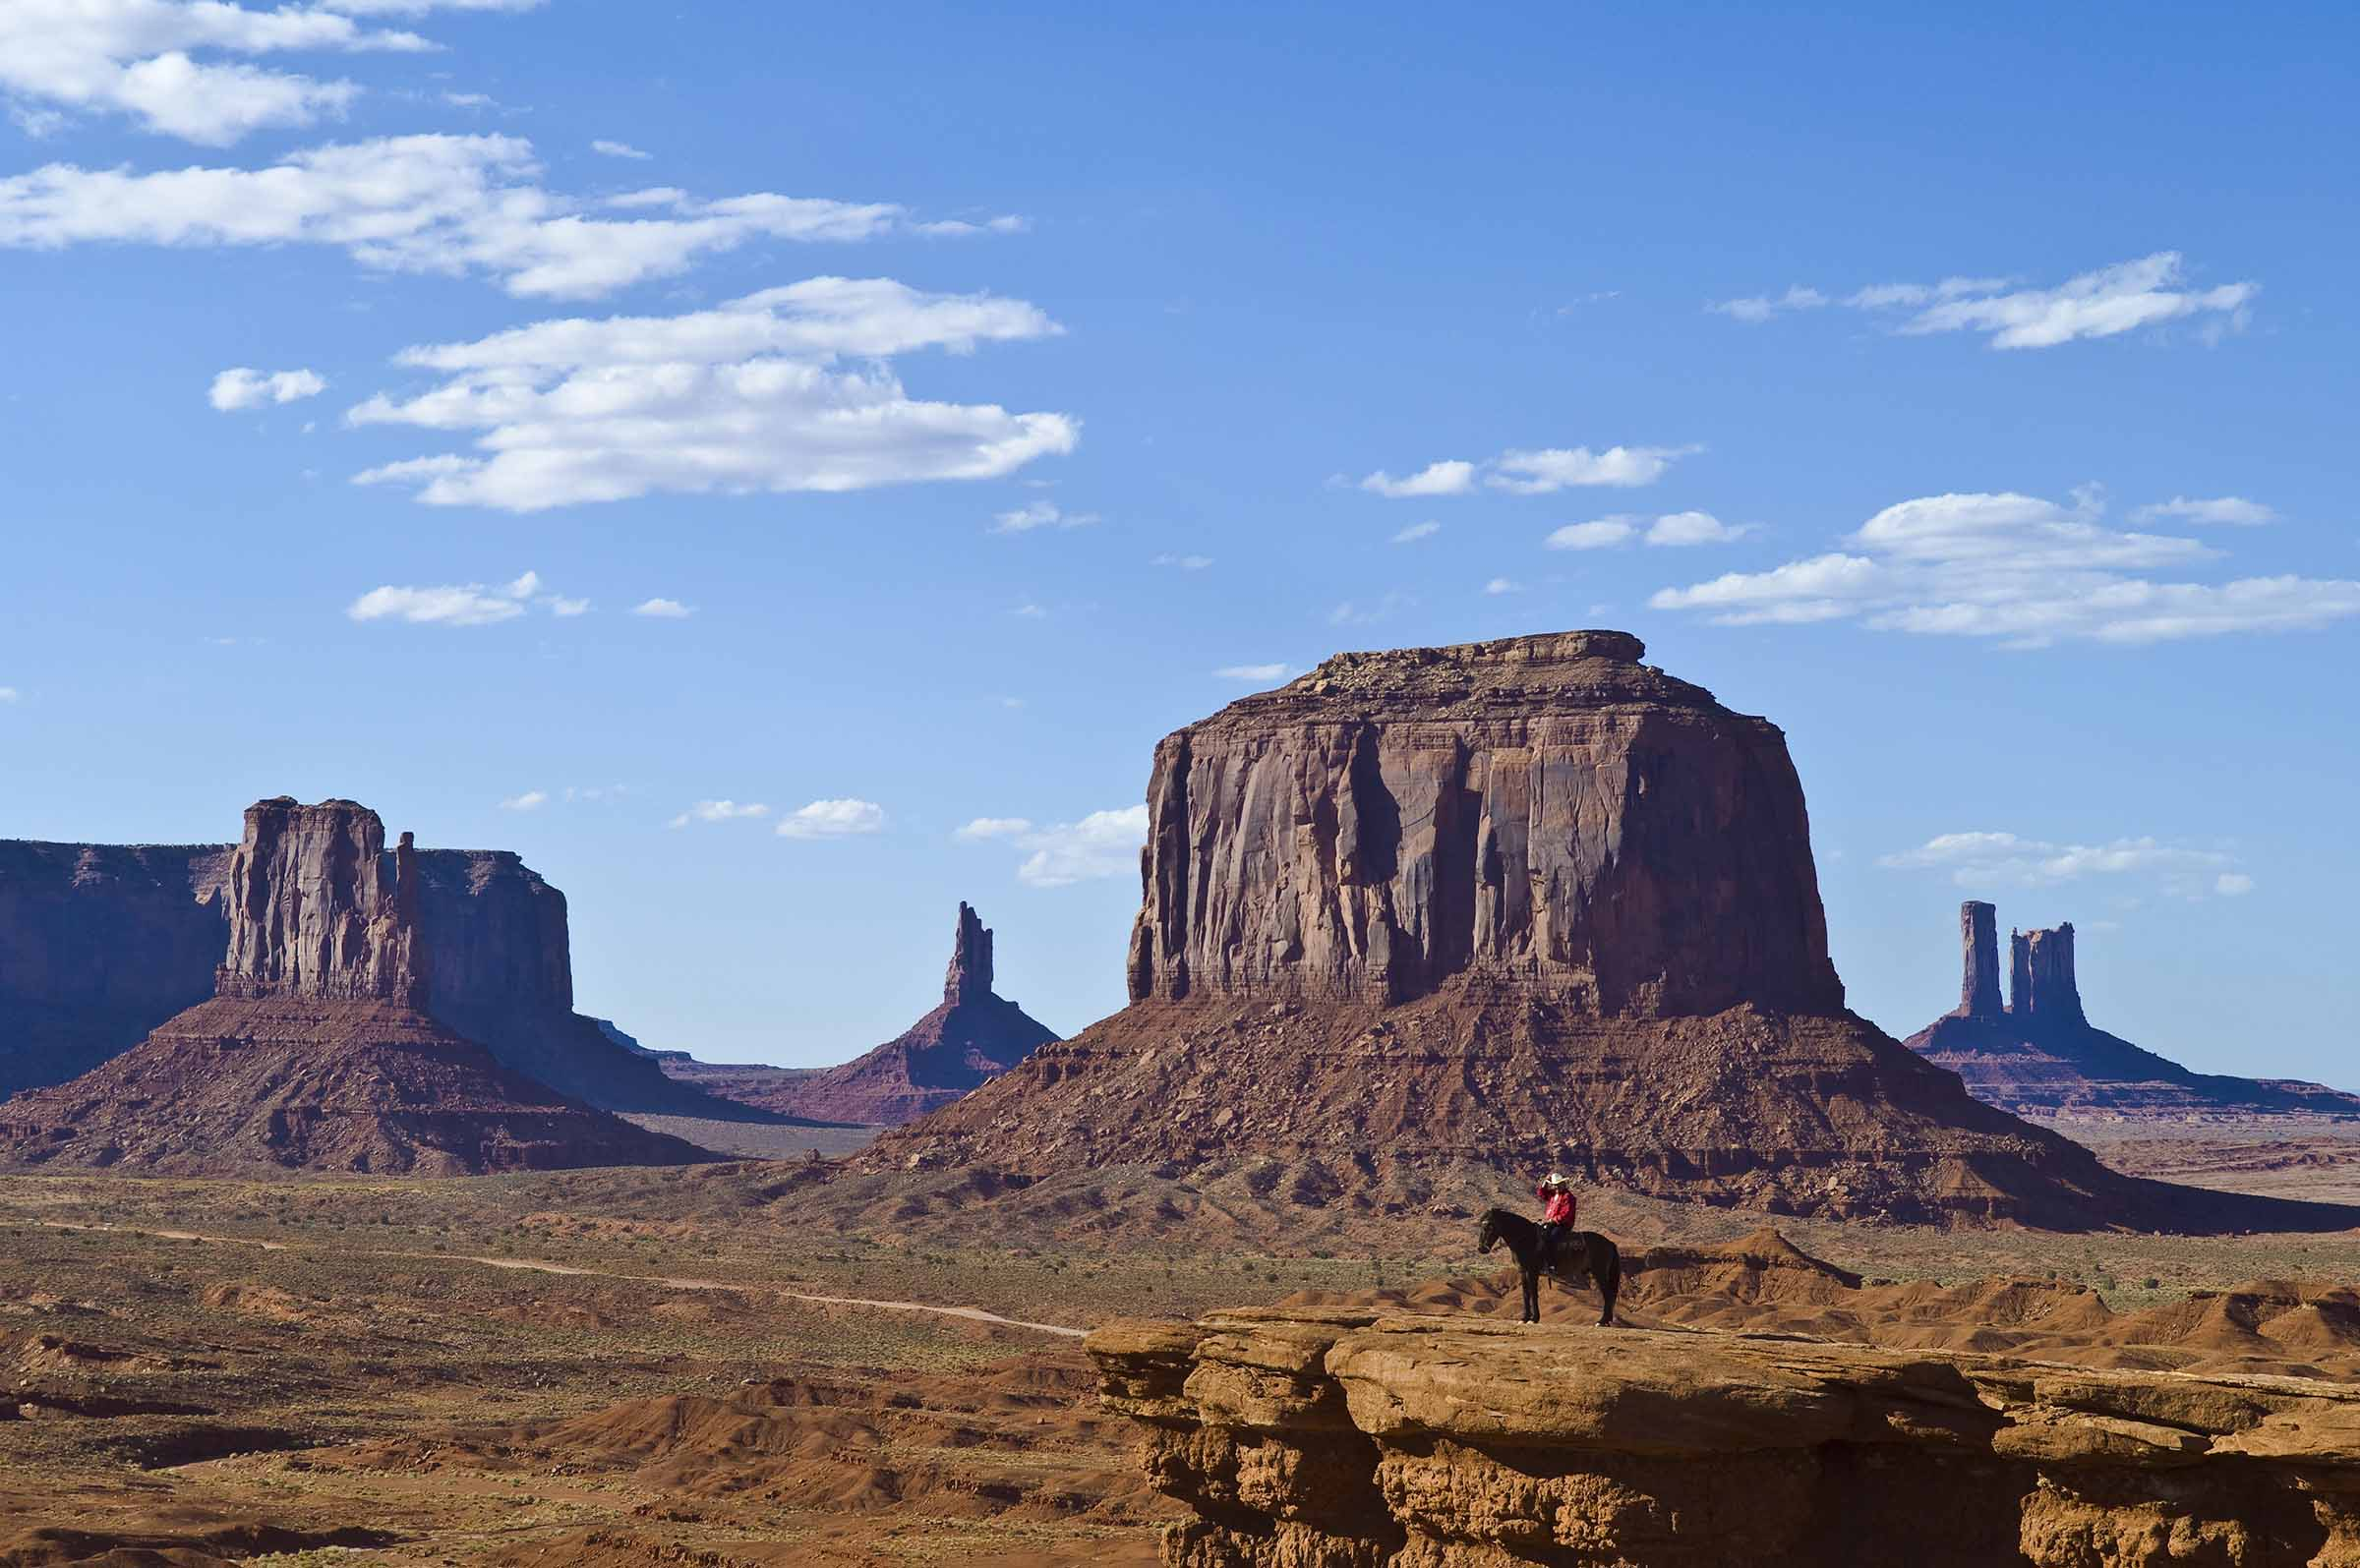 Monument Valley with Navajo man posing on horseback at John Ford?s Point; Monument Valley Navajo Tribal Park on the Utah-Arizona border.